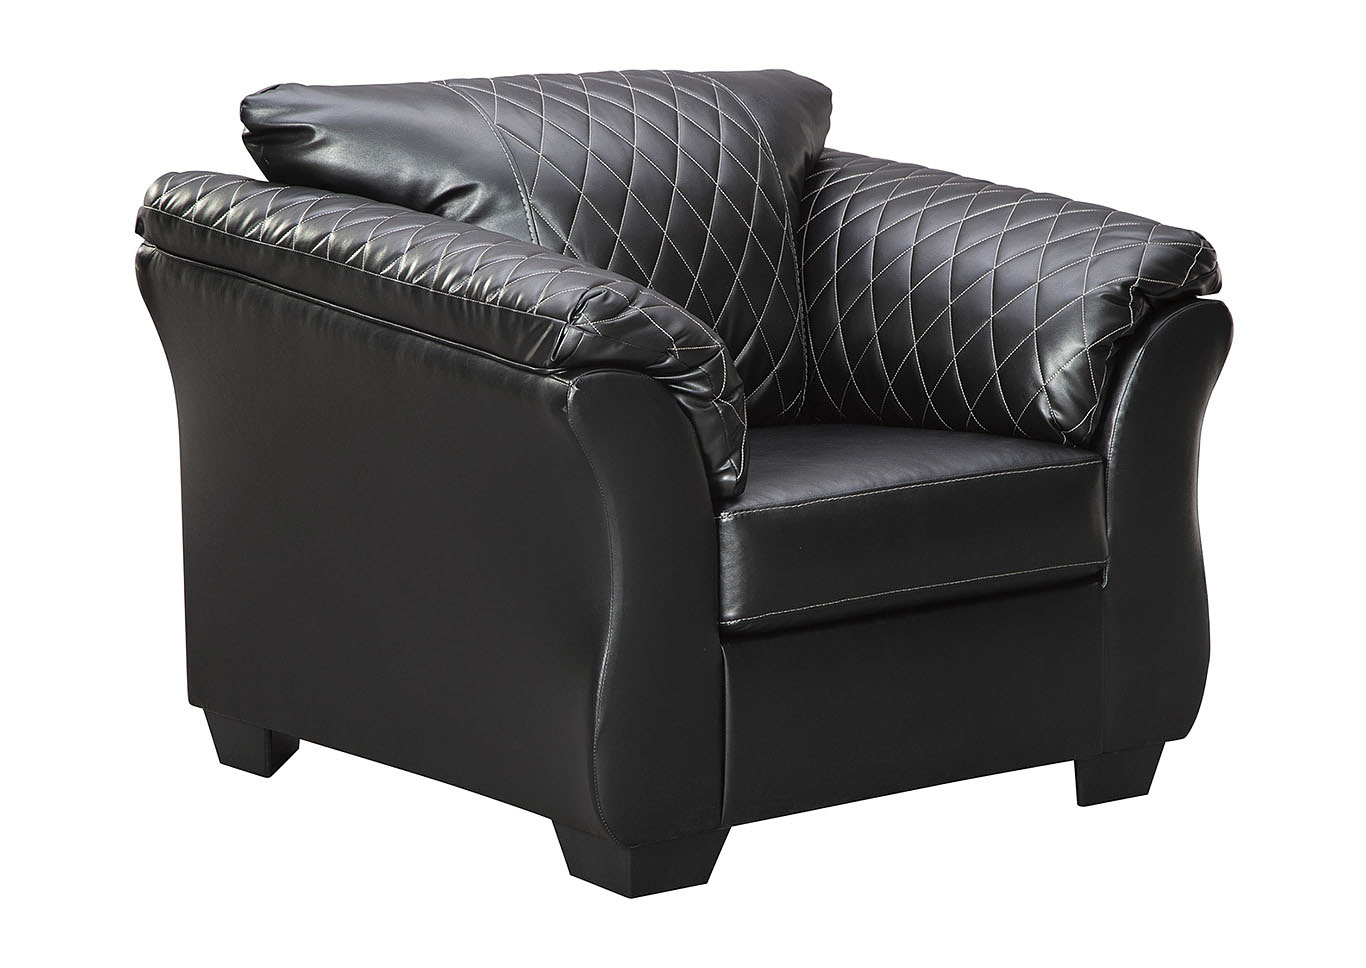 Bertrillo Black Chair,Signature Design By Ashley